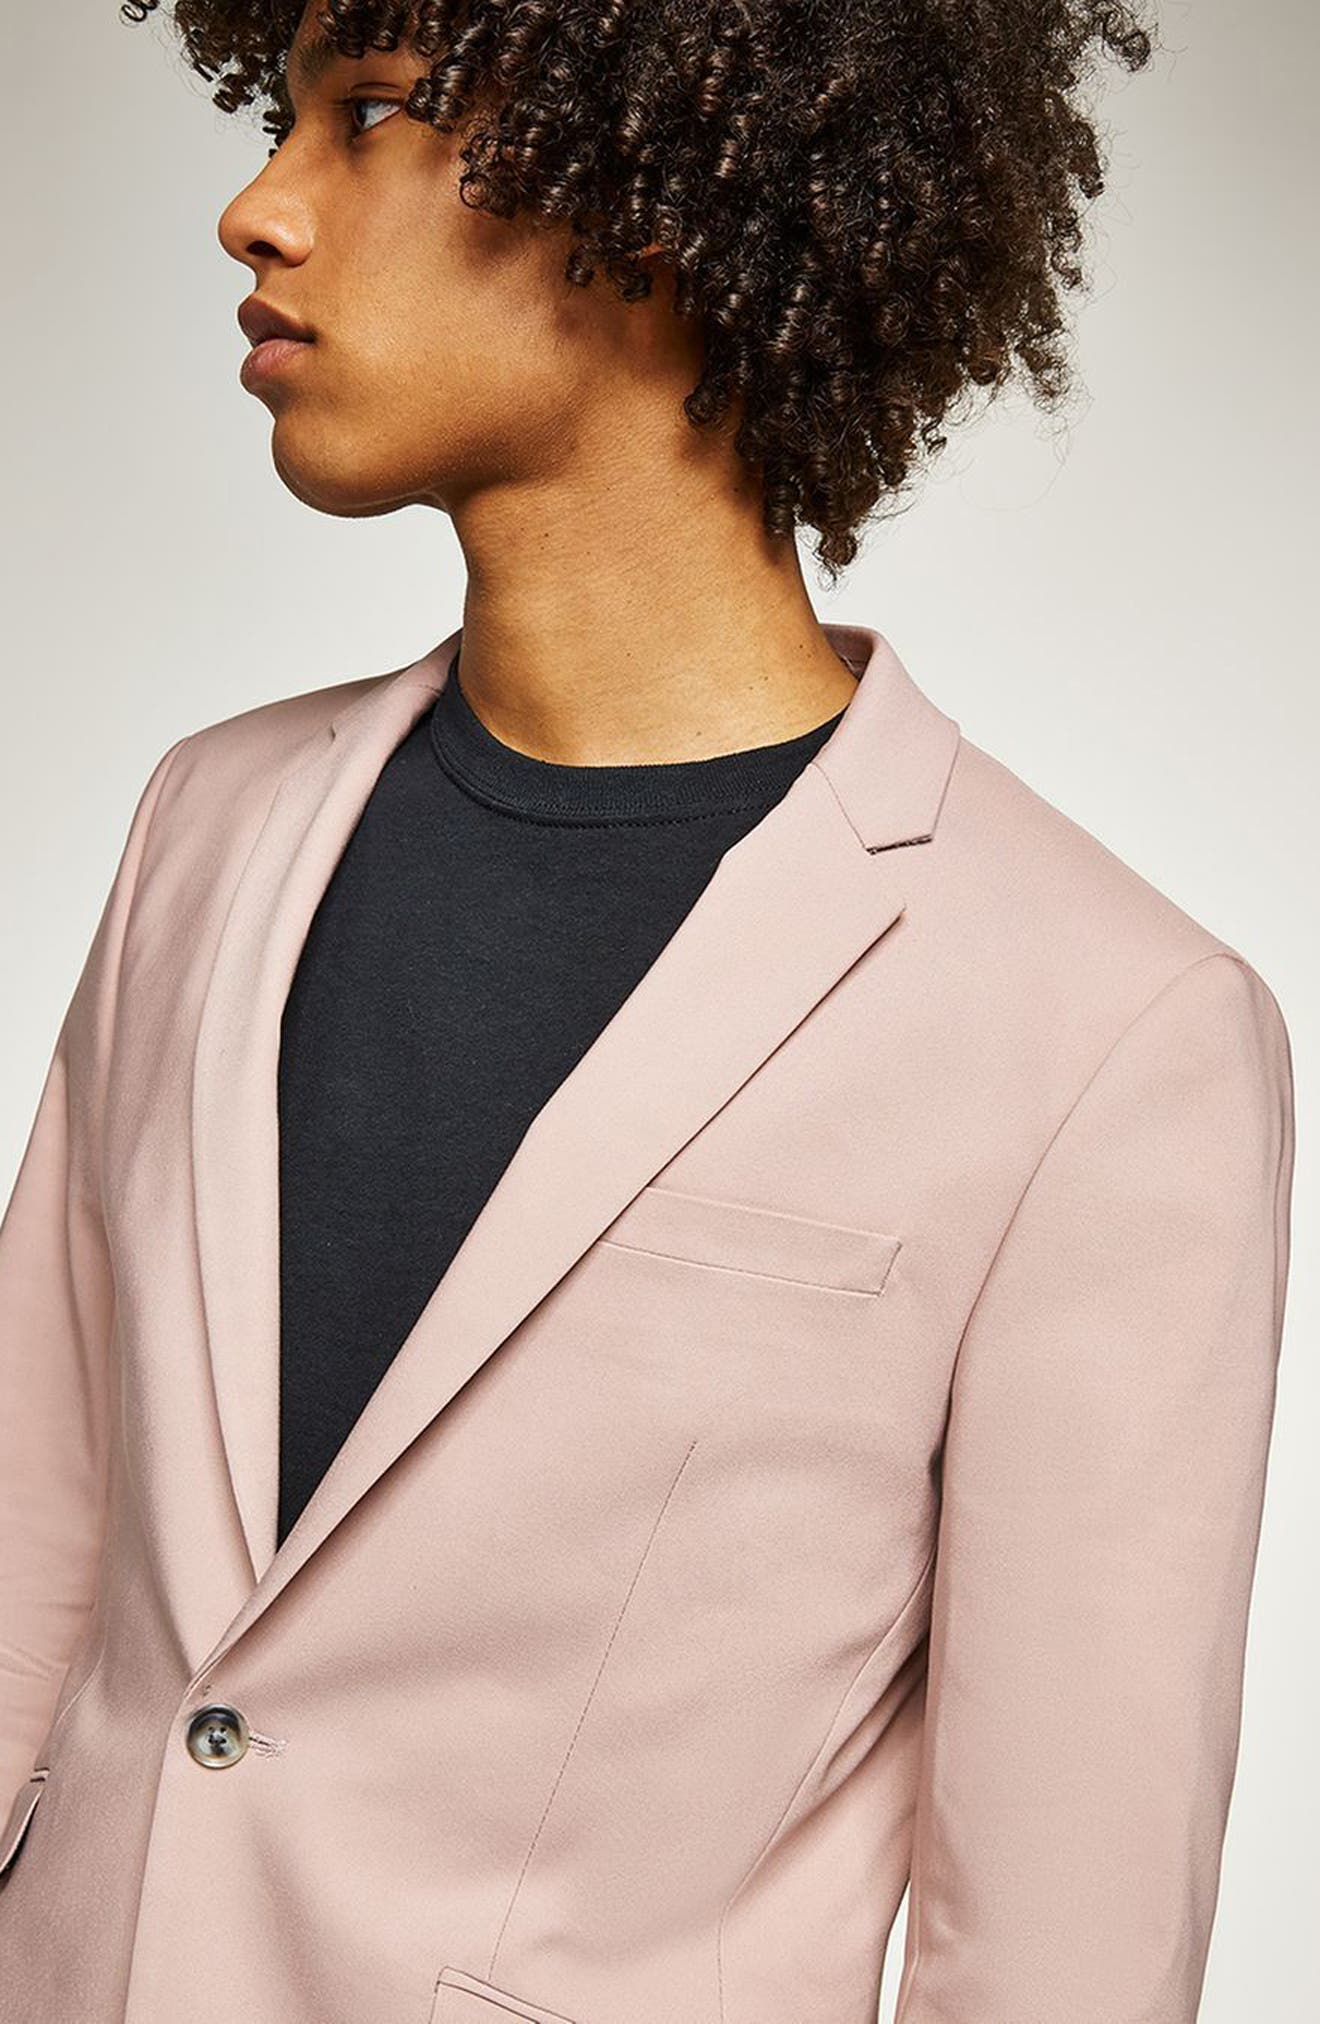 Skinny Fit Suit Jacket,                             Alternate thumbnail 2, color,                             Pink Multi